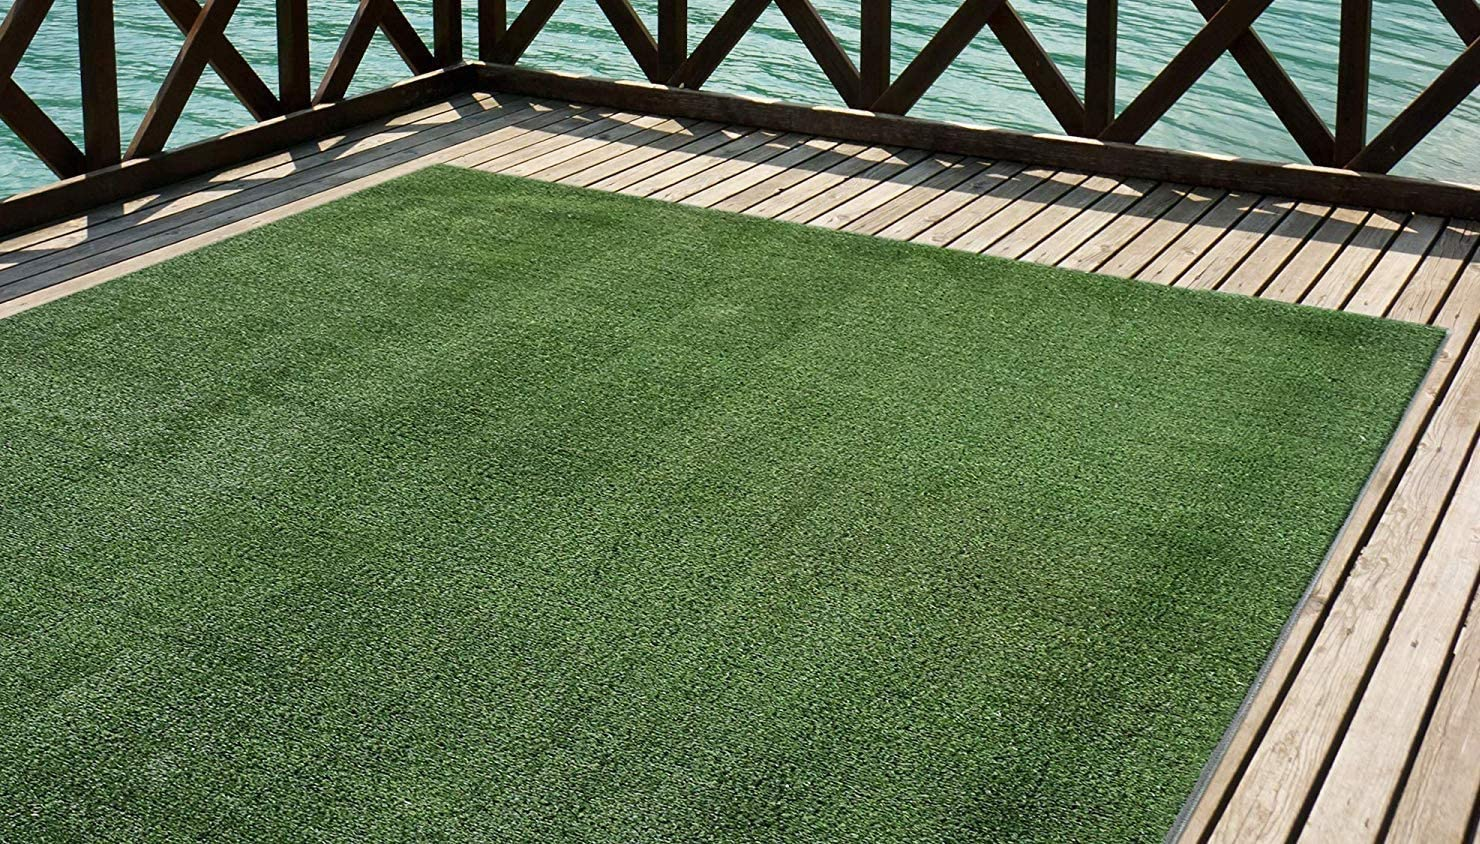 Premium artificial grass.  Height of 7mm.  1x5 meter rolls For terrace, garden, fence, pool, dog etc (1x5)